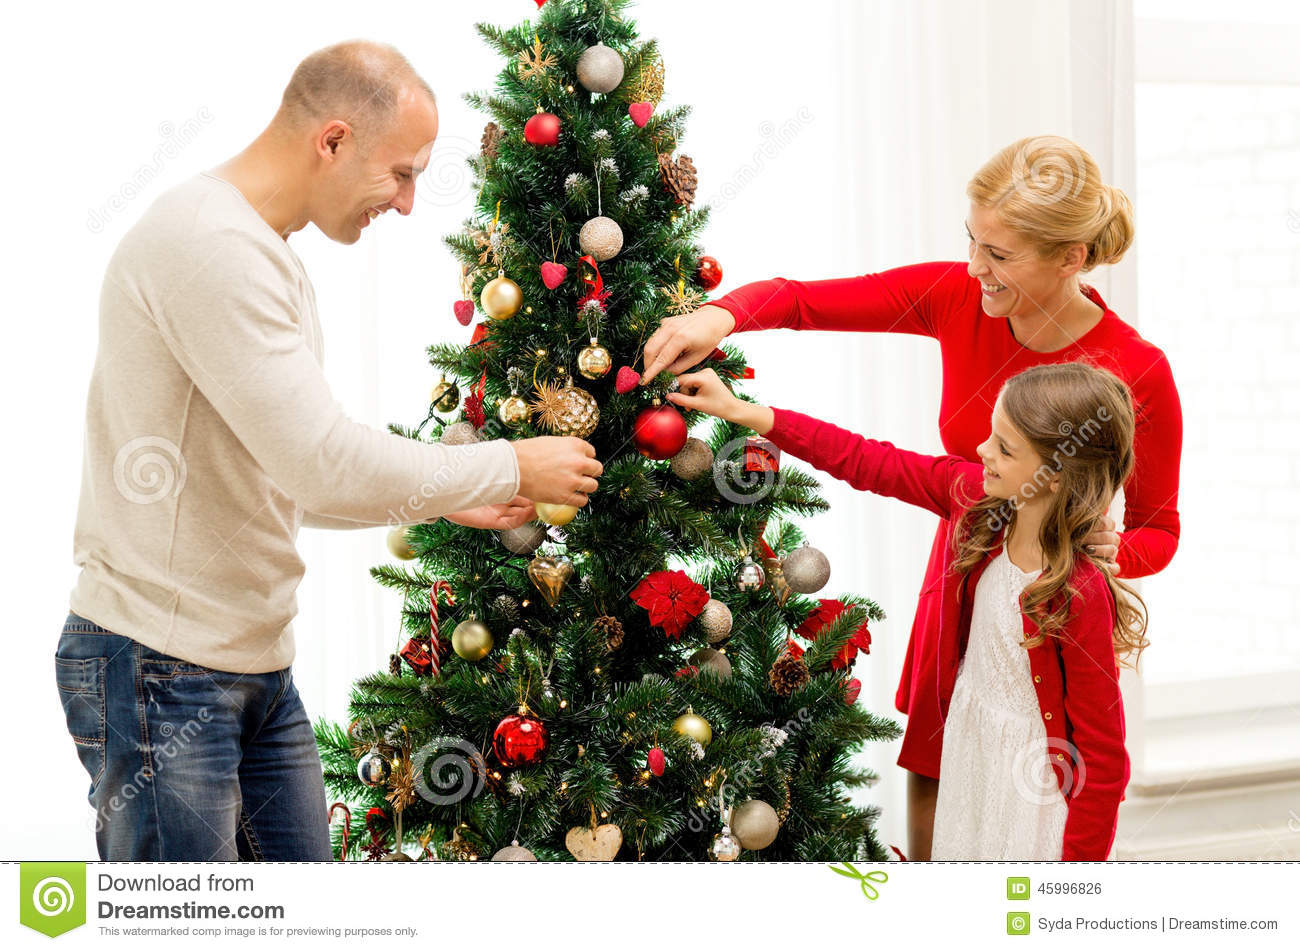 People Decorating For Christmas fine people decorating lick of paint redecorating is one the for